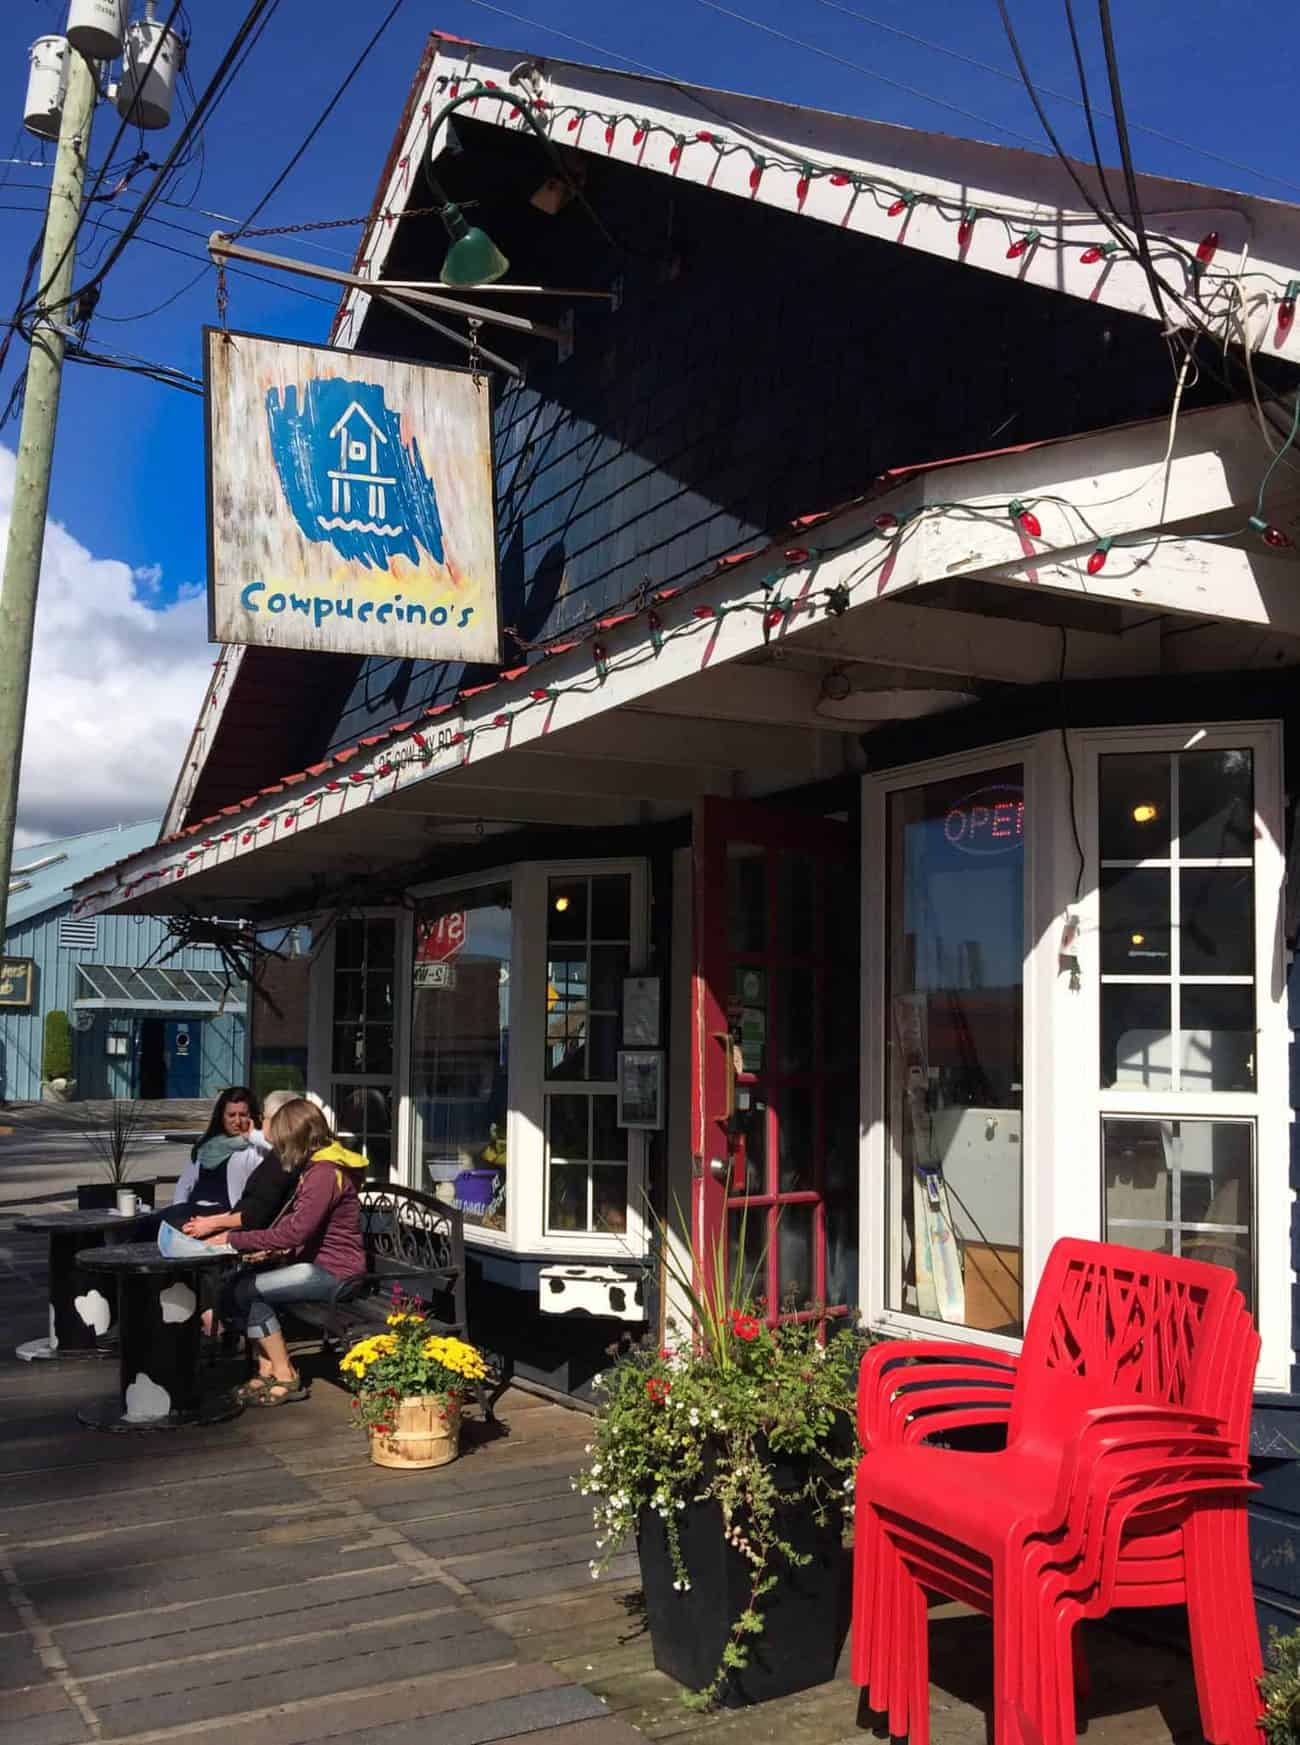 Image of Cowpuccino's Cafe in Prince Rupert, Canada